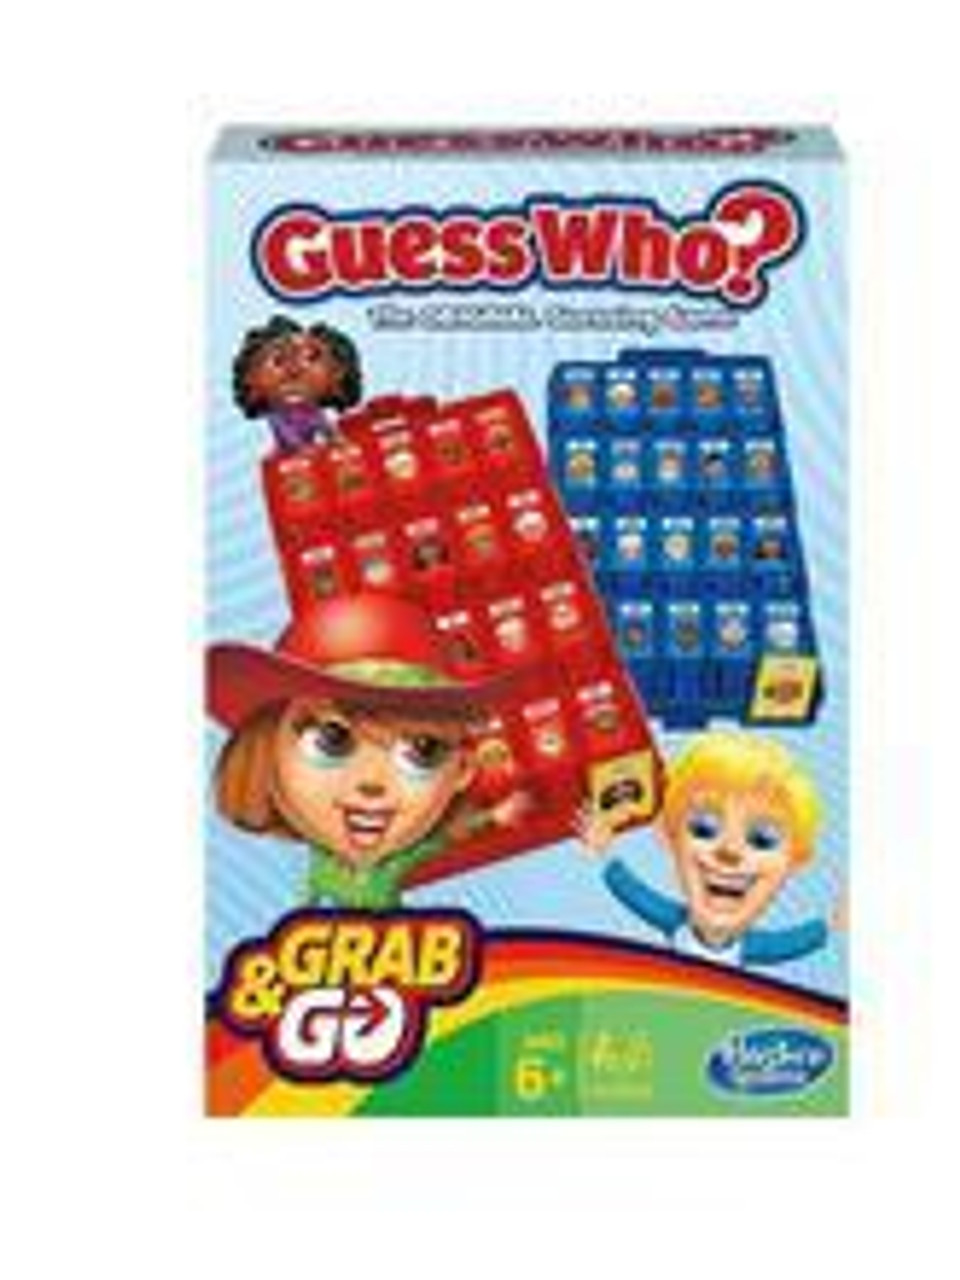 GUESS WHO GRAB & GO